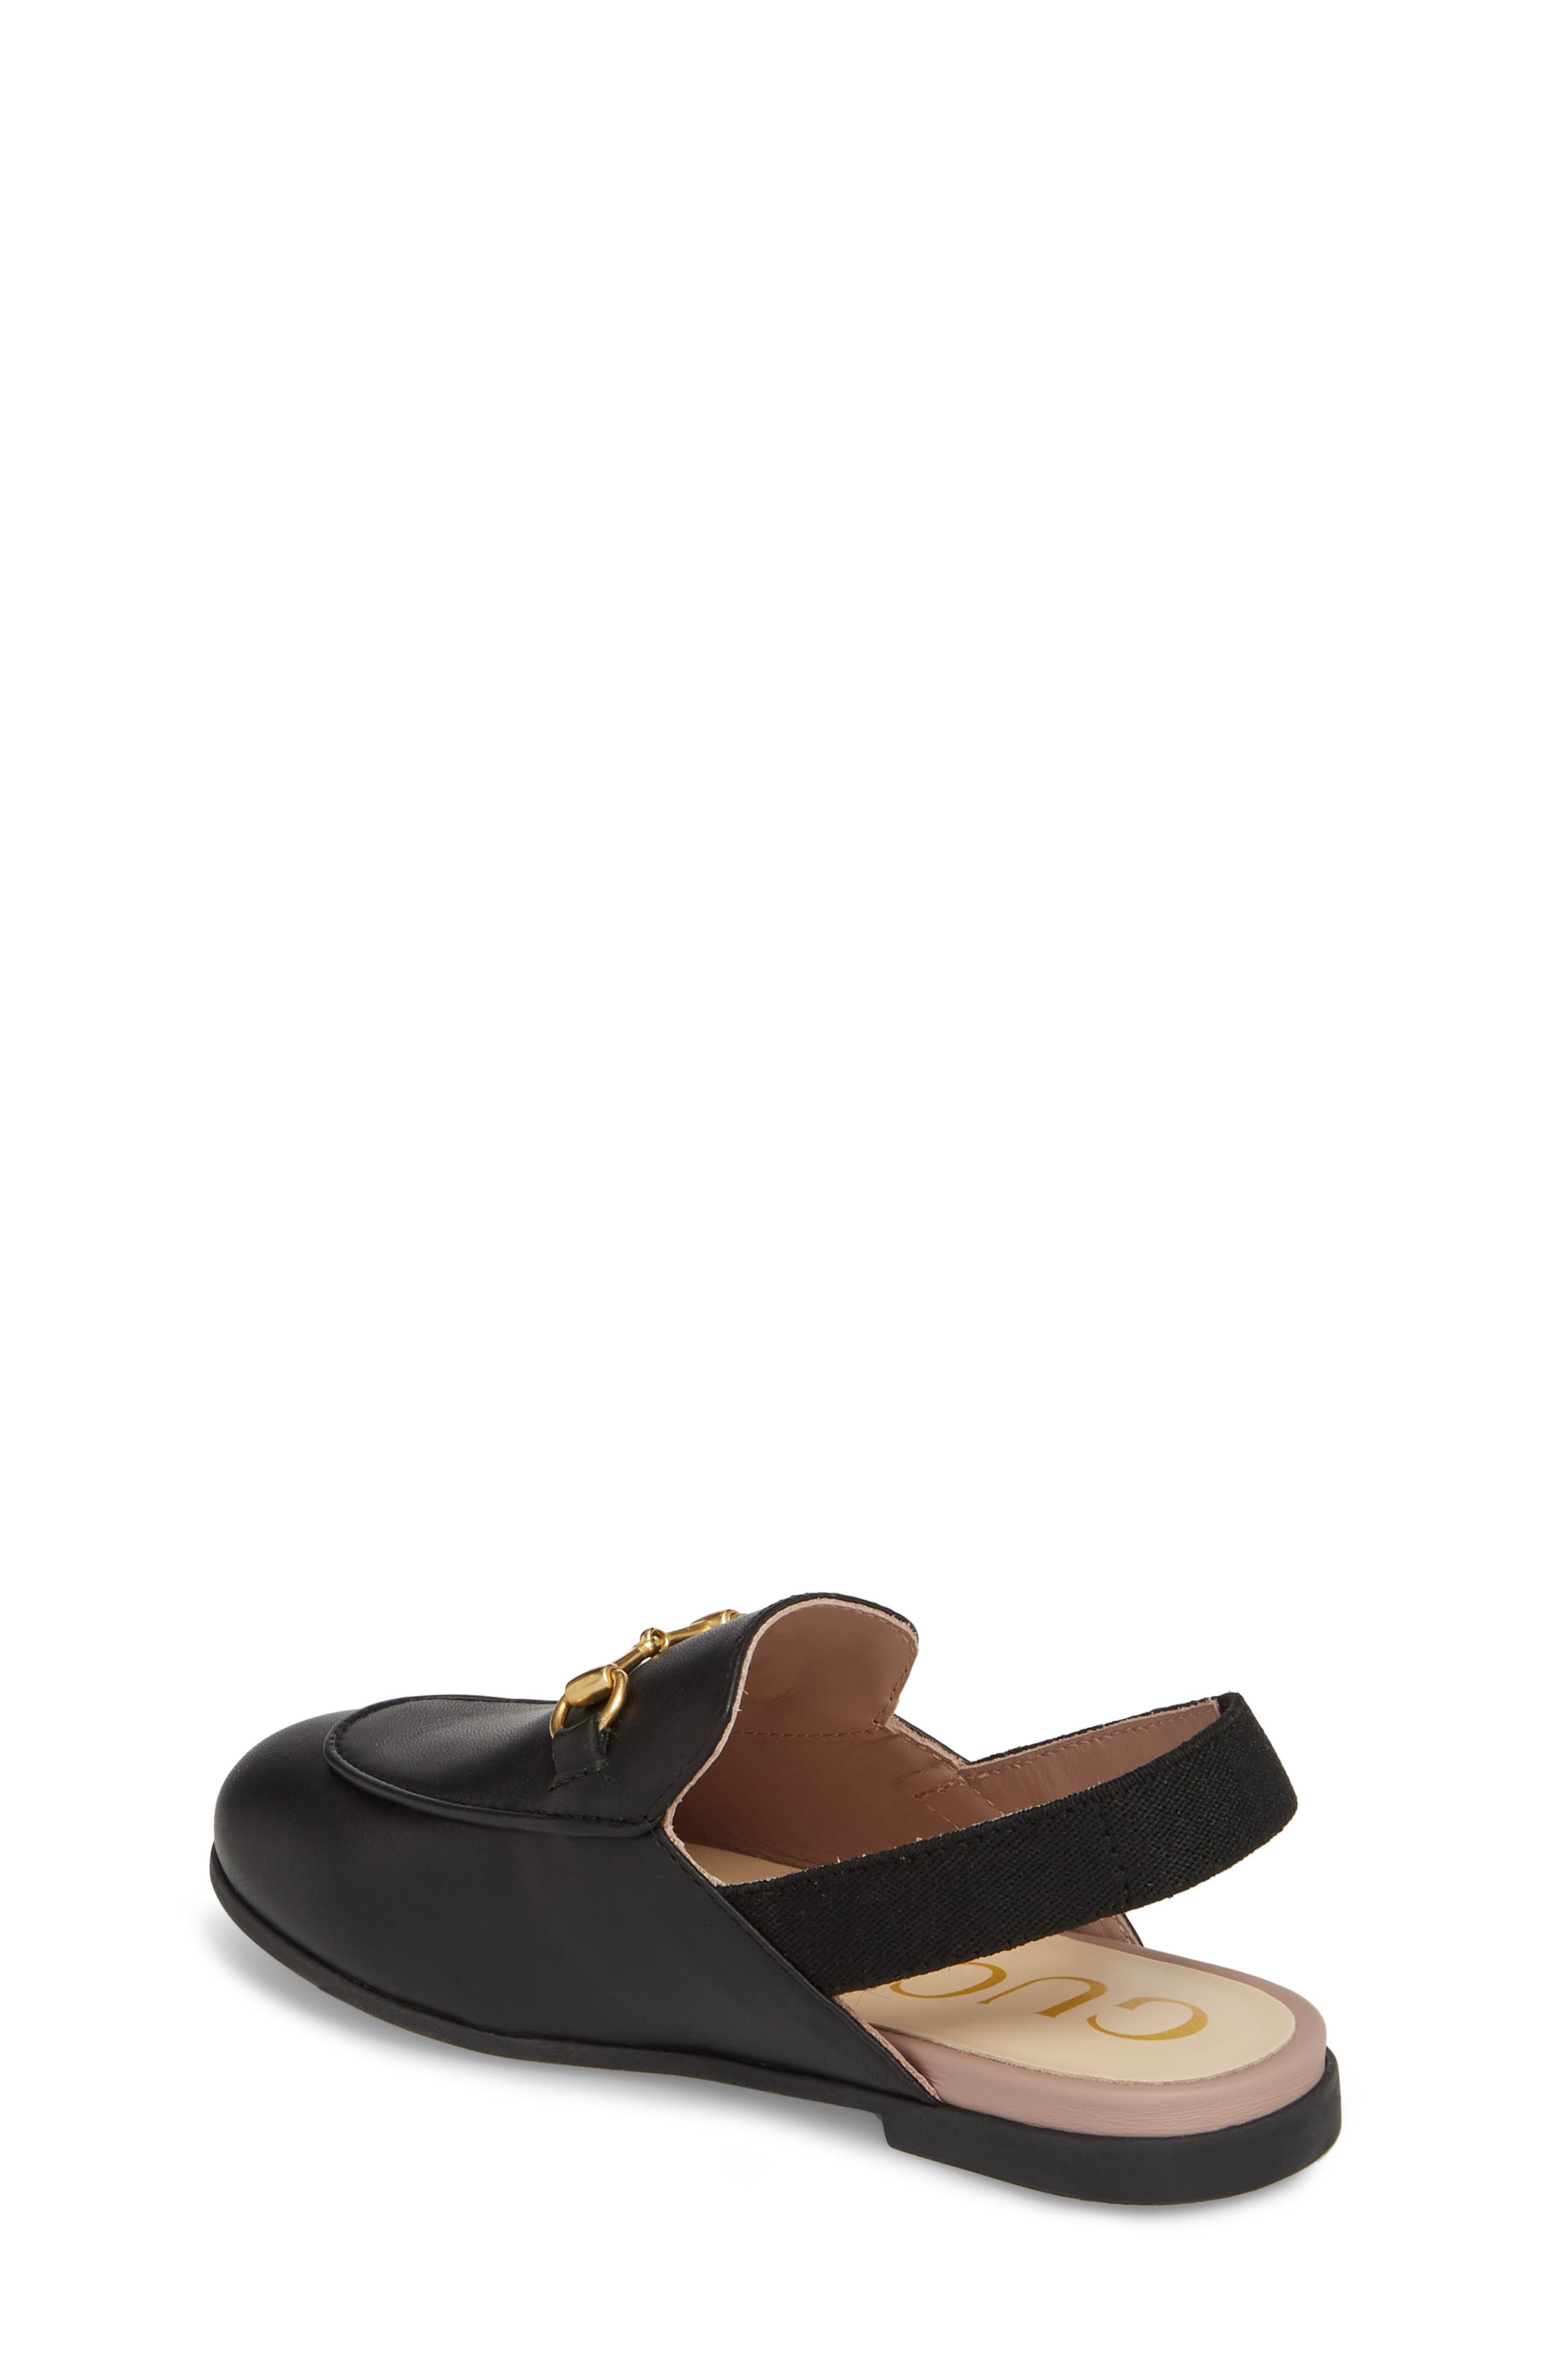 GUCCI, Princetown Loafer Mule, Alternate thumbnail 2, color, BLACK/ BLACK